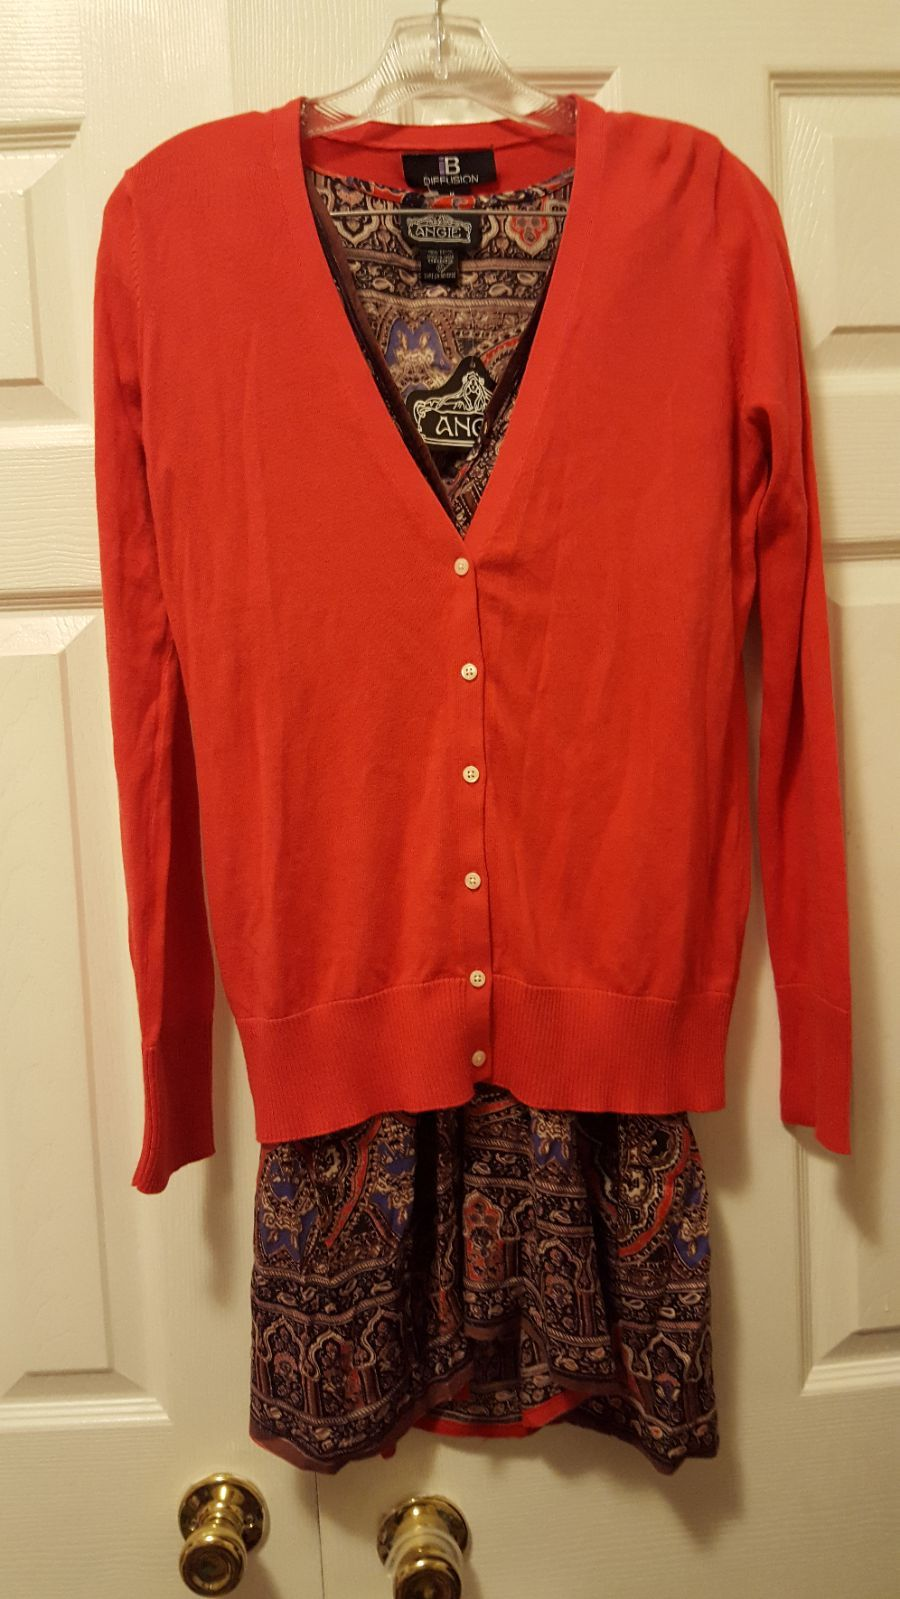 NWT M I.B Diffusion Red Orange Cardigan - Mercari: BUY & SELL ...